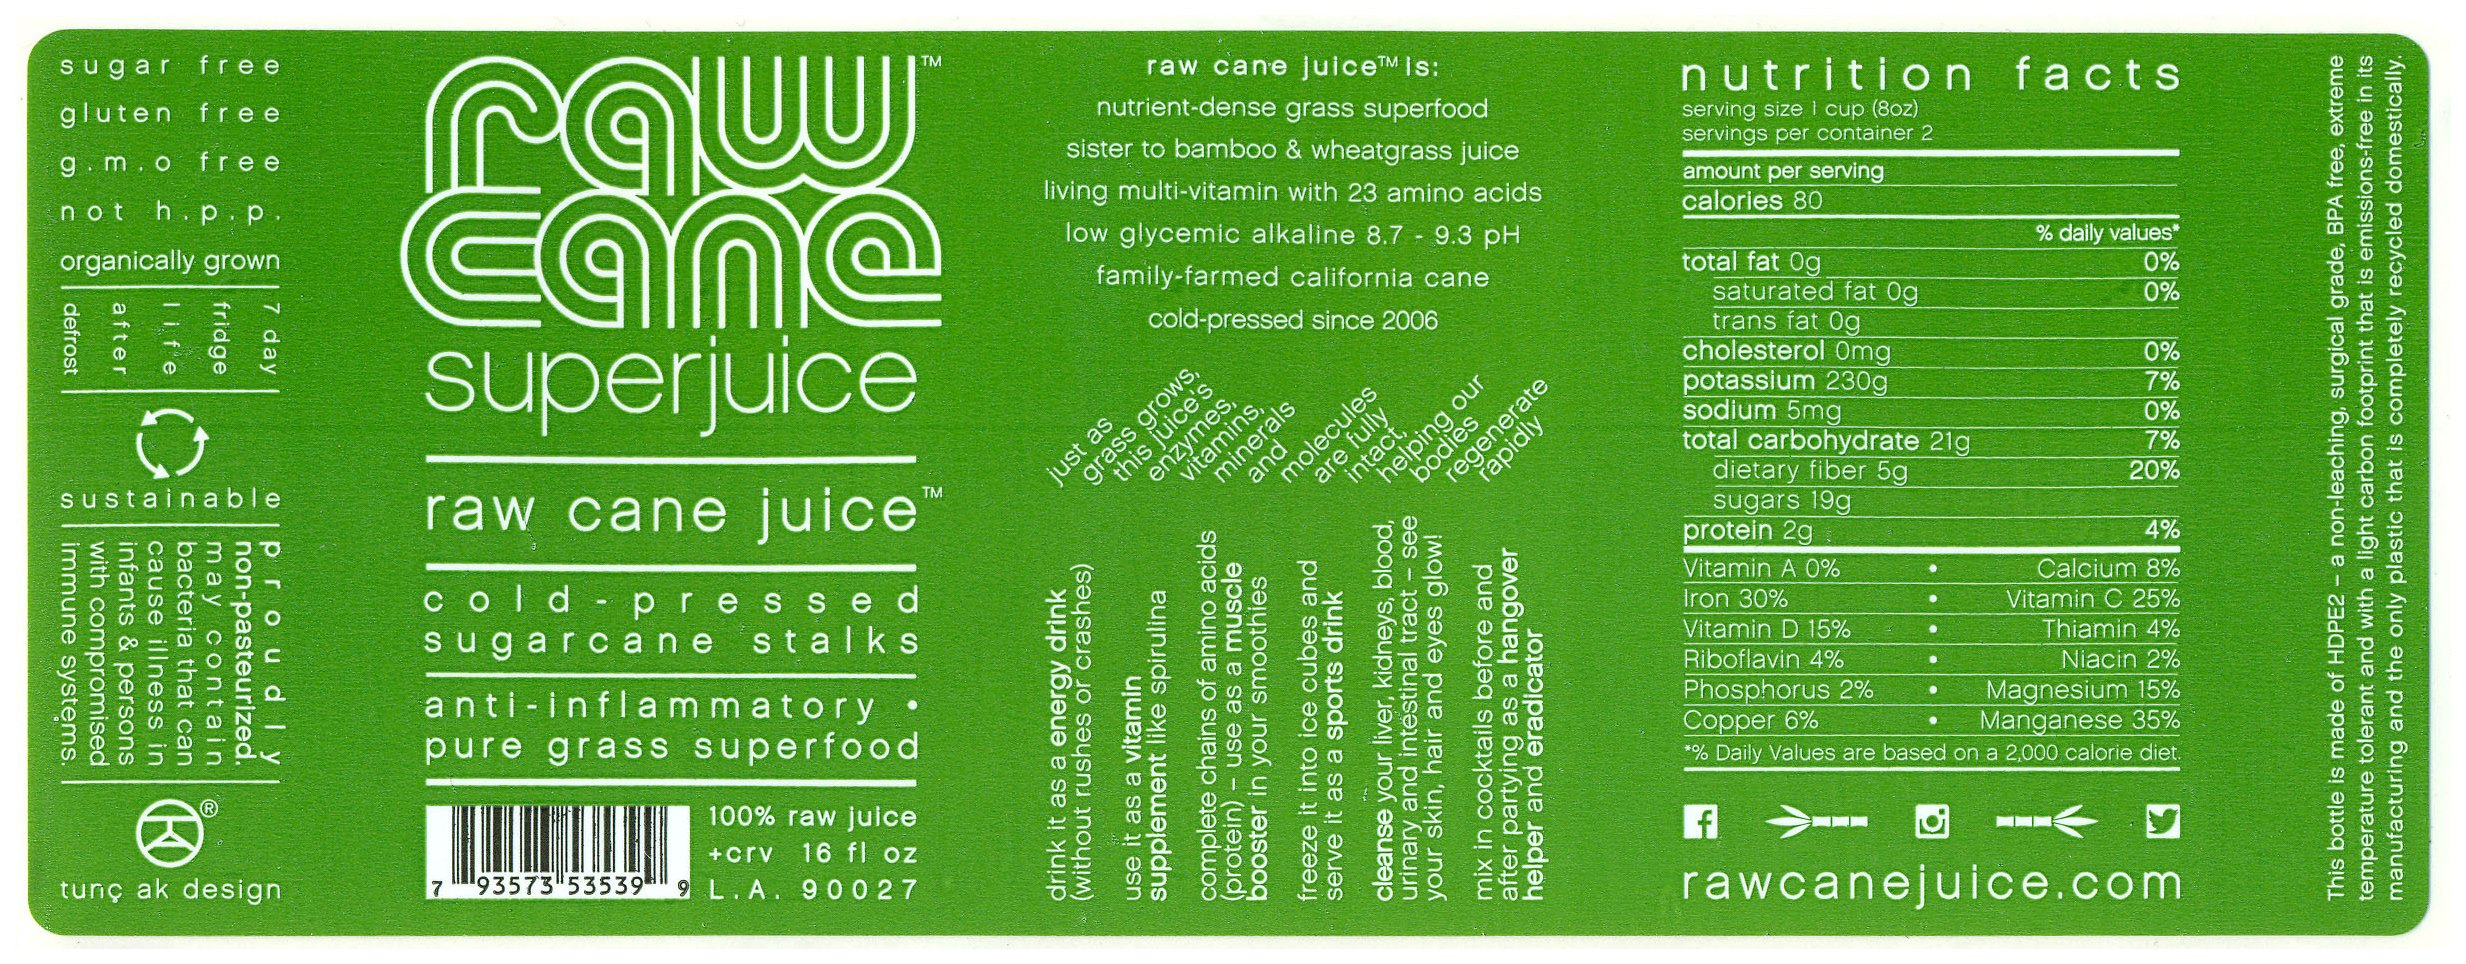 juicing information It's also worthwhile to learn more about the nutritional information behind juicing if you're interested in doing a juice fast about veggie juice.